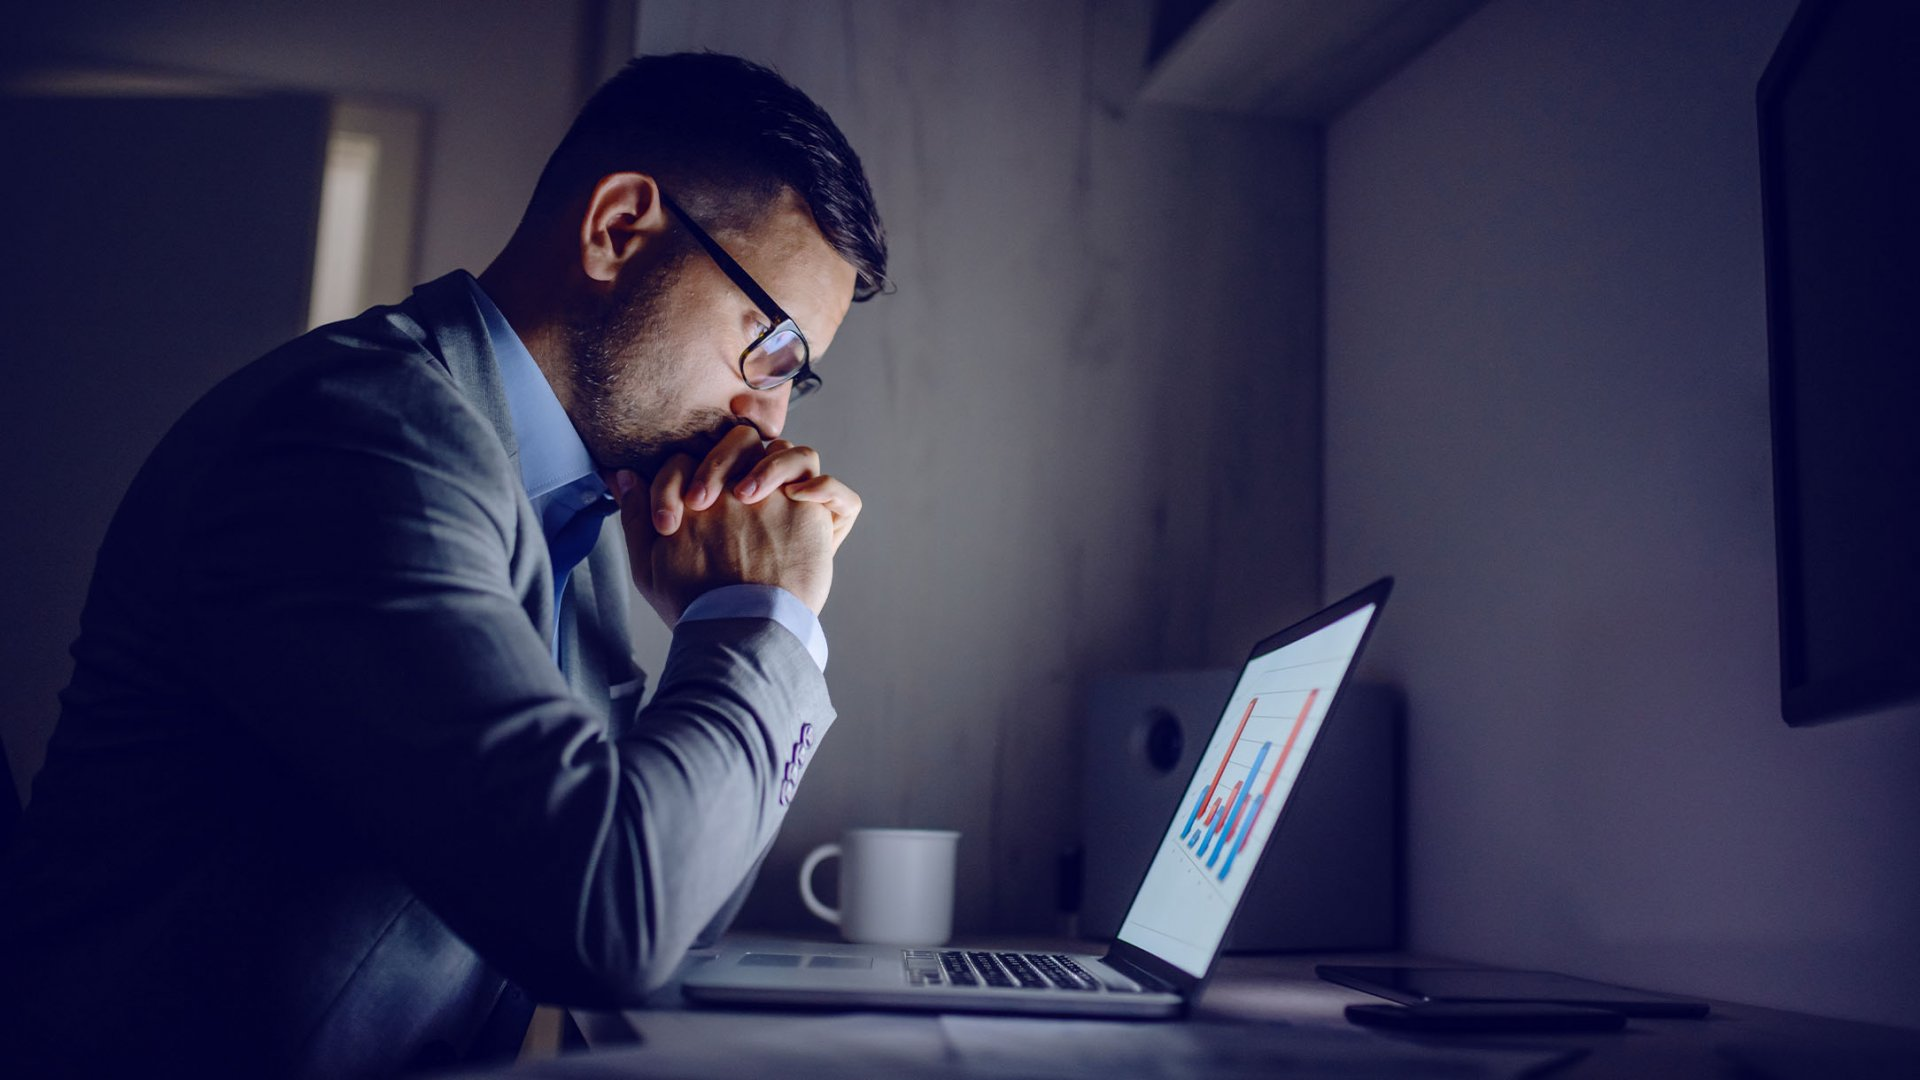 How to Coach an Employee With Anxiety